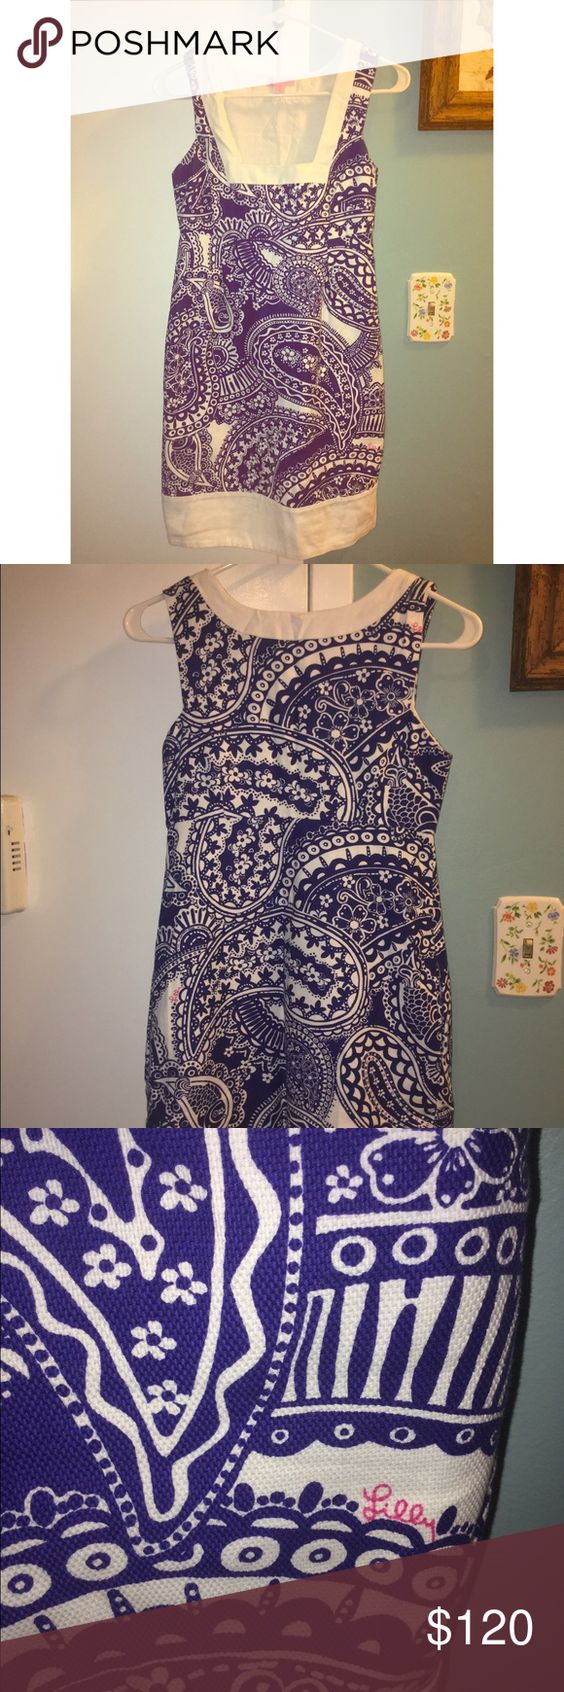 Lilly Pulitzer White and Blue Dress Beautiful and true to size. Has pockets. Only been worn twice. Lilly Pulitzer Dresses Midi